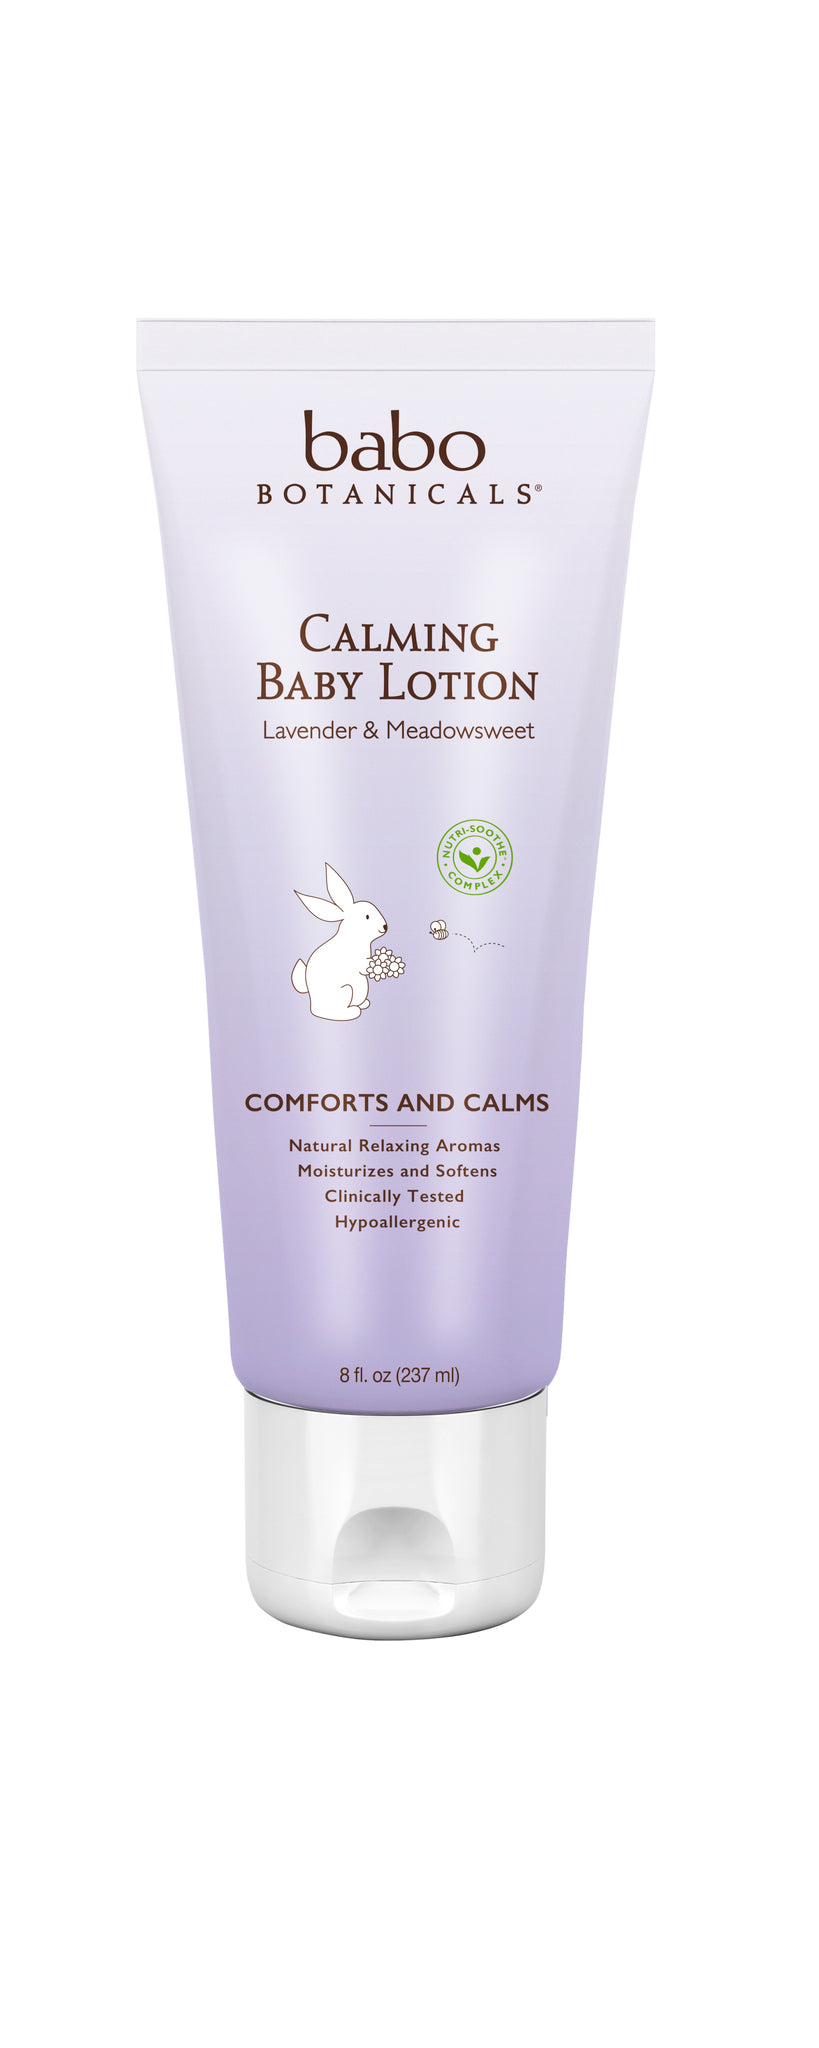 Babo Botanicals - Calming Baby Lotion